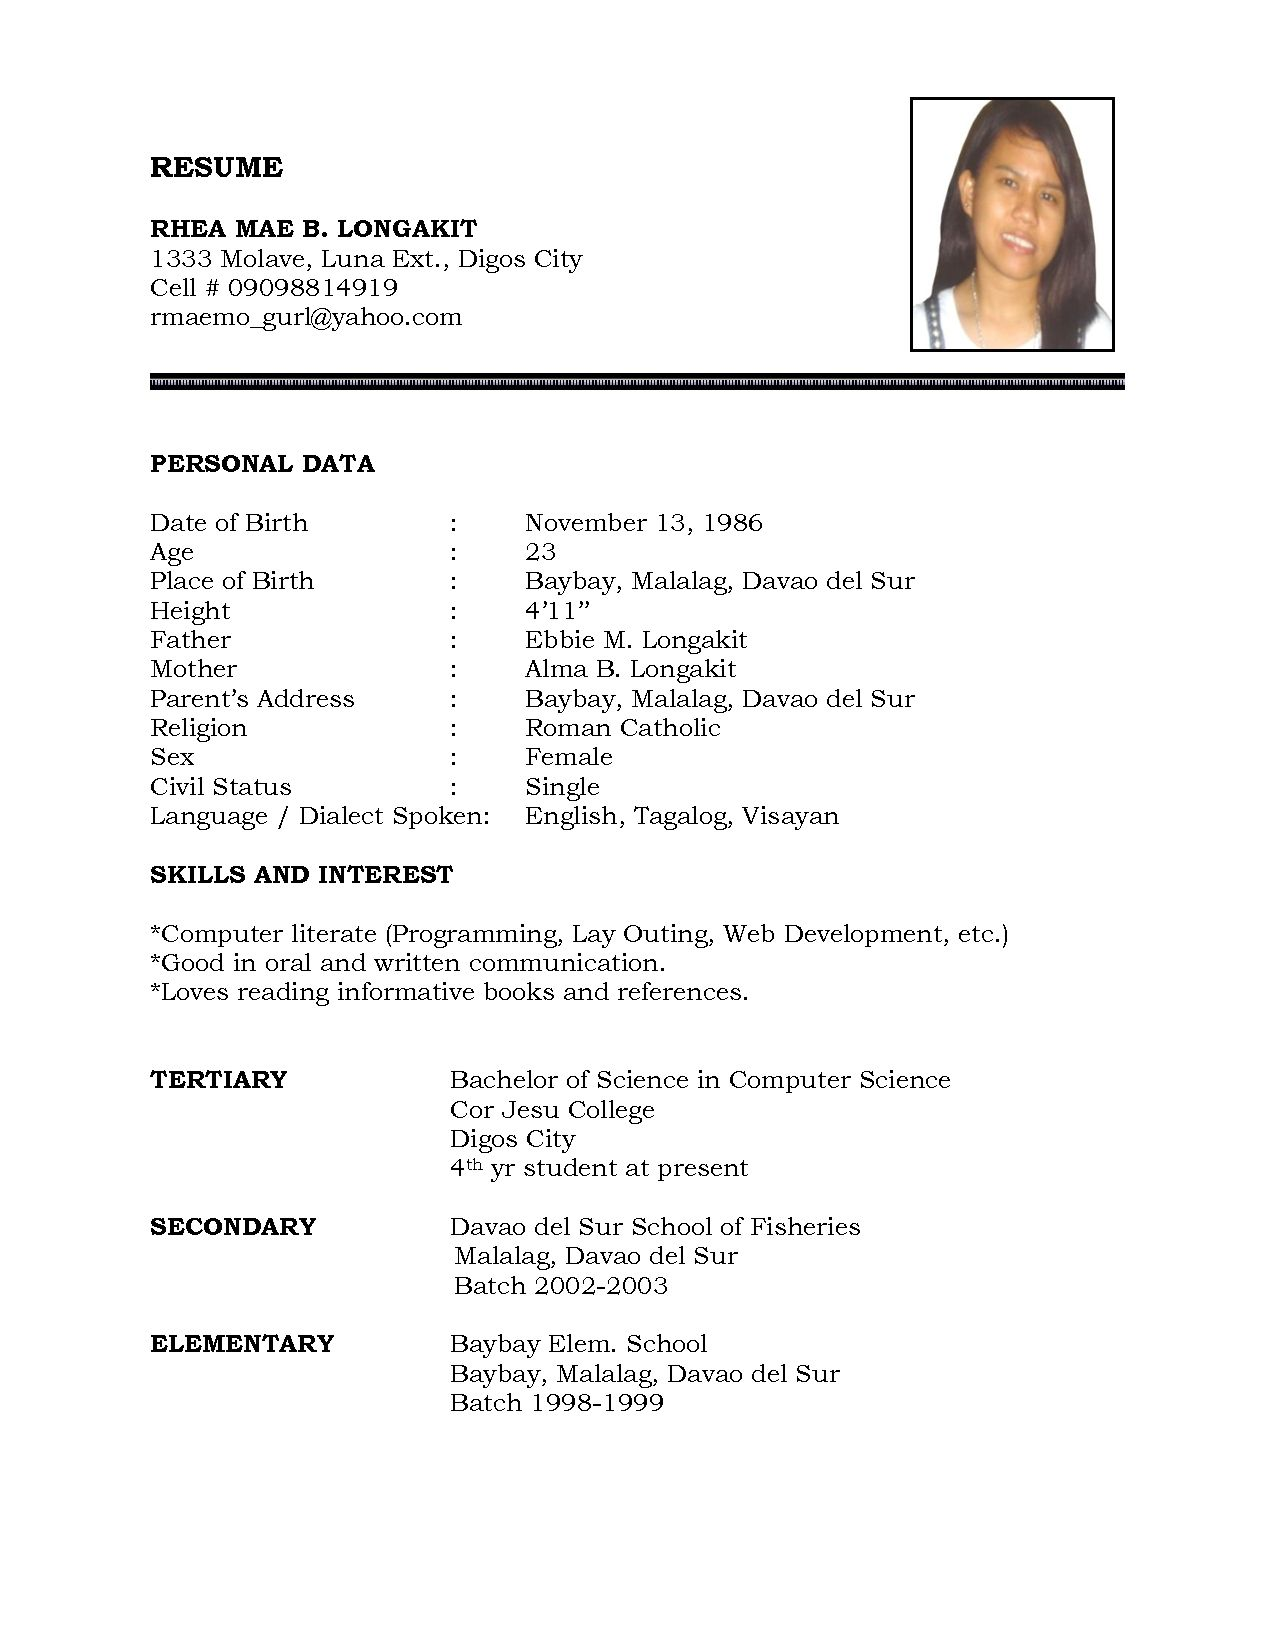 Resume Sample Resume Sample Simple De9E2A60F The Simple Format Of Resume For Job